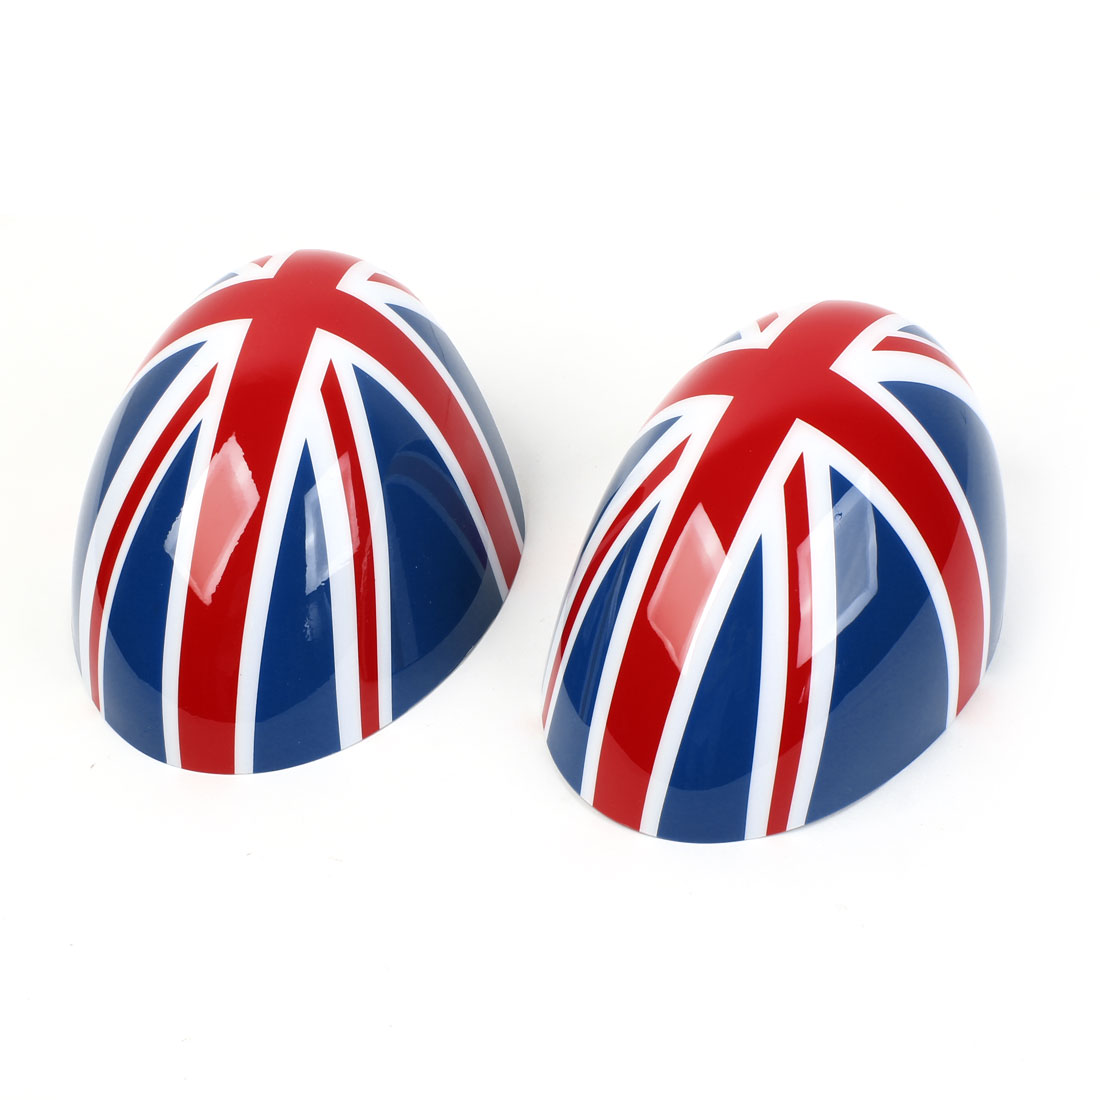 2 Pcs Blue Red Union Flag Prints Side Rear View Mirror Caps Cover for BMW MINI